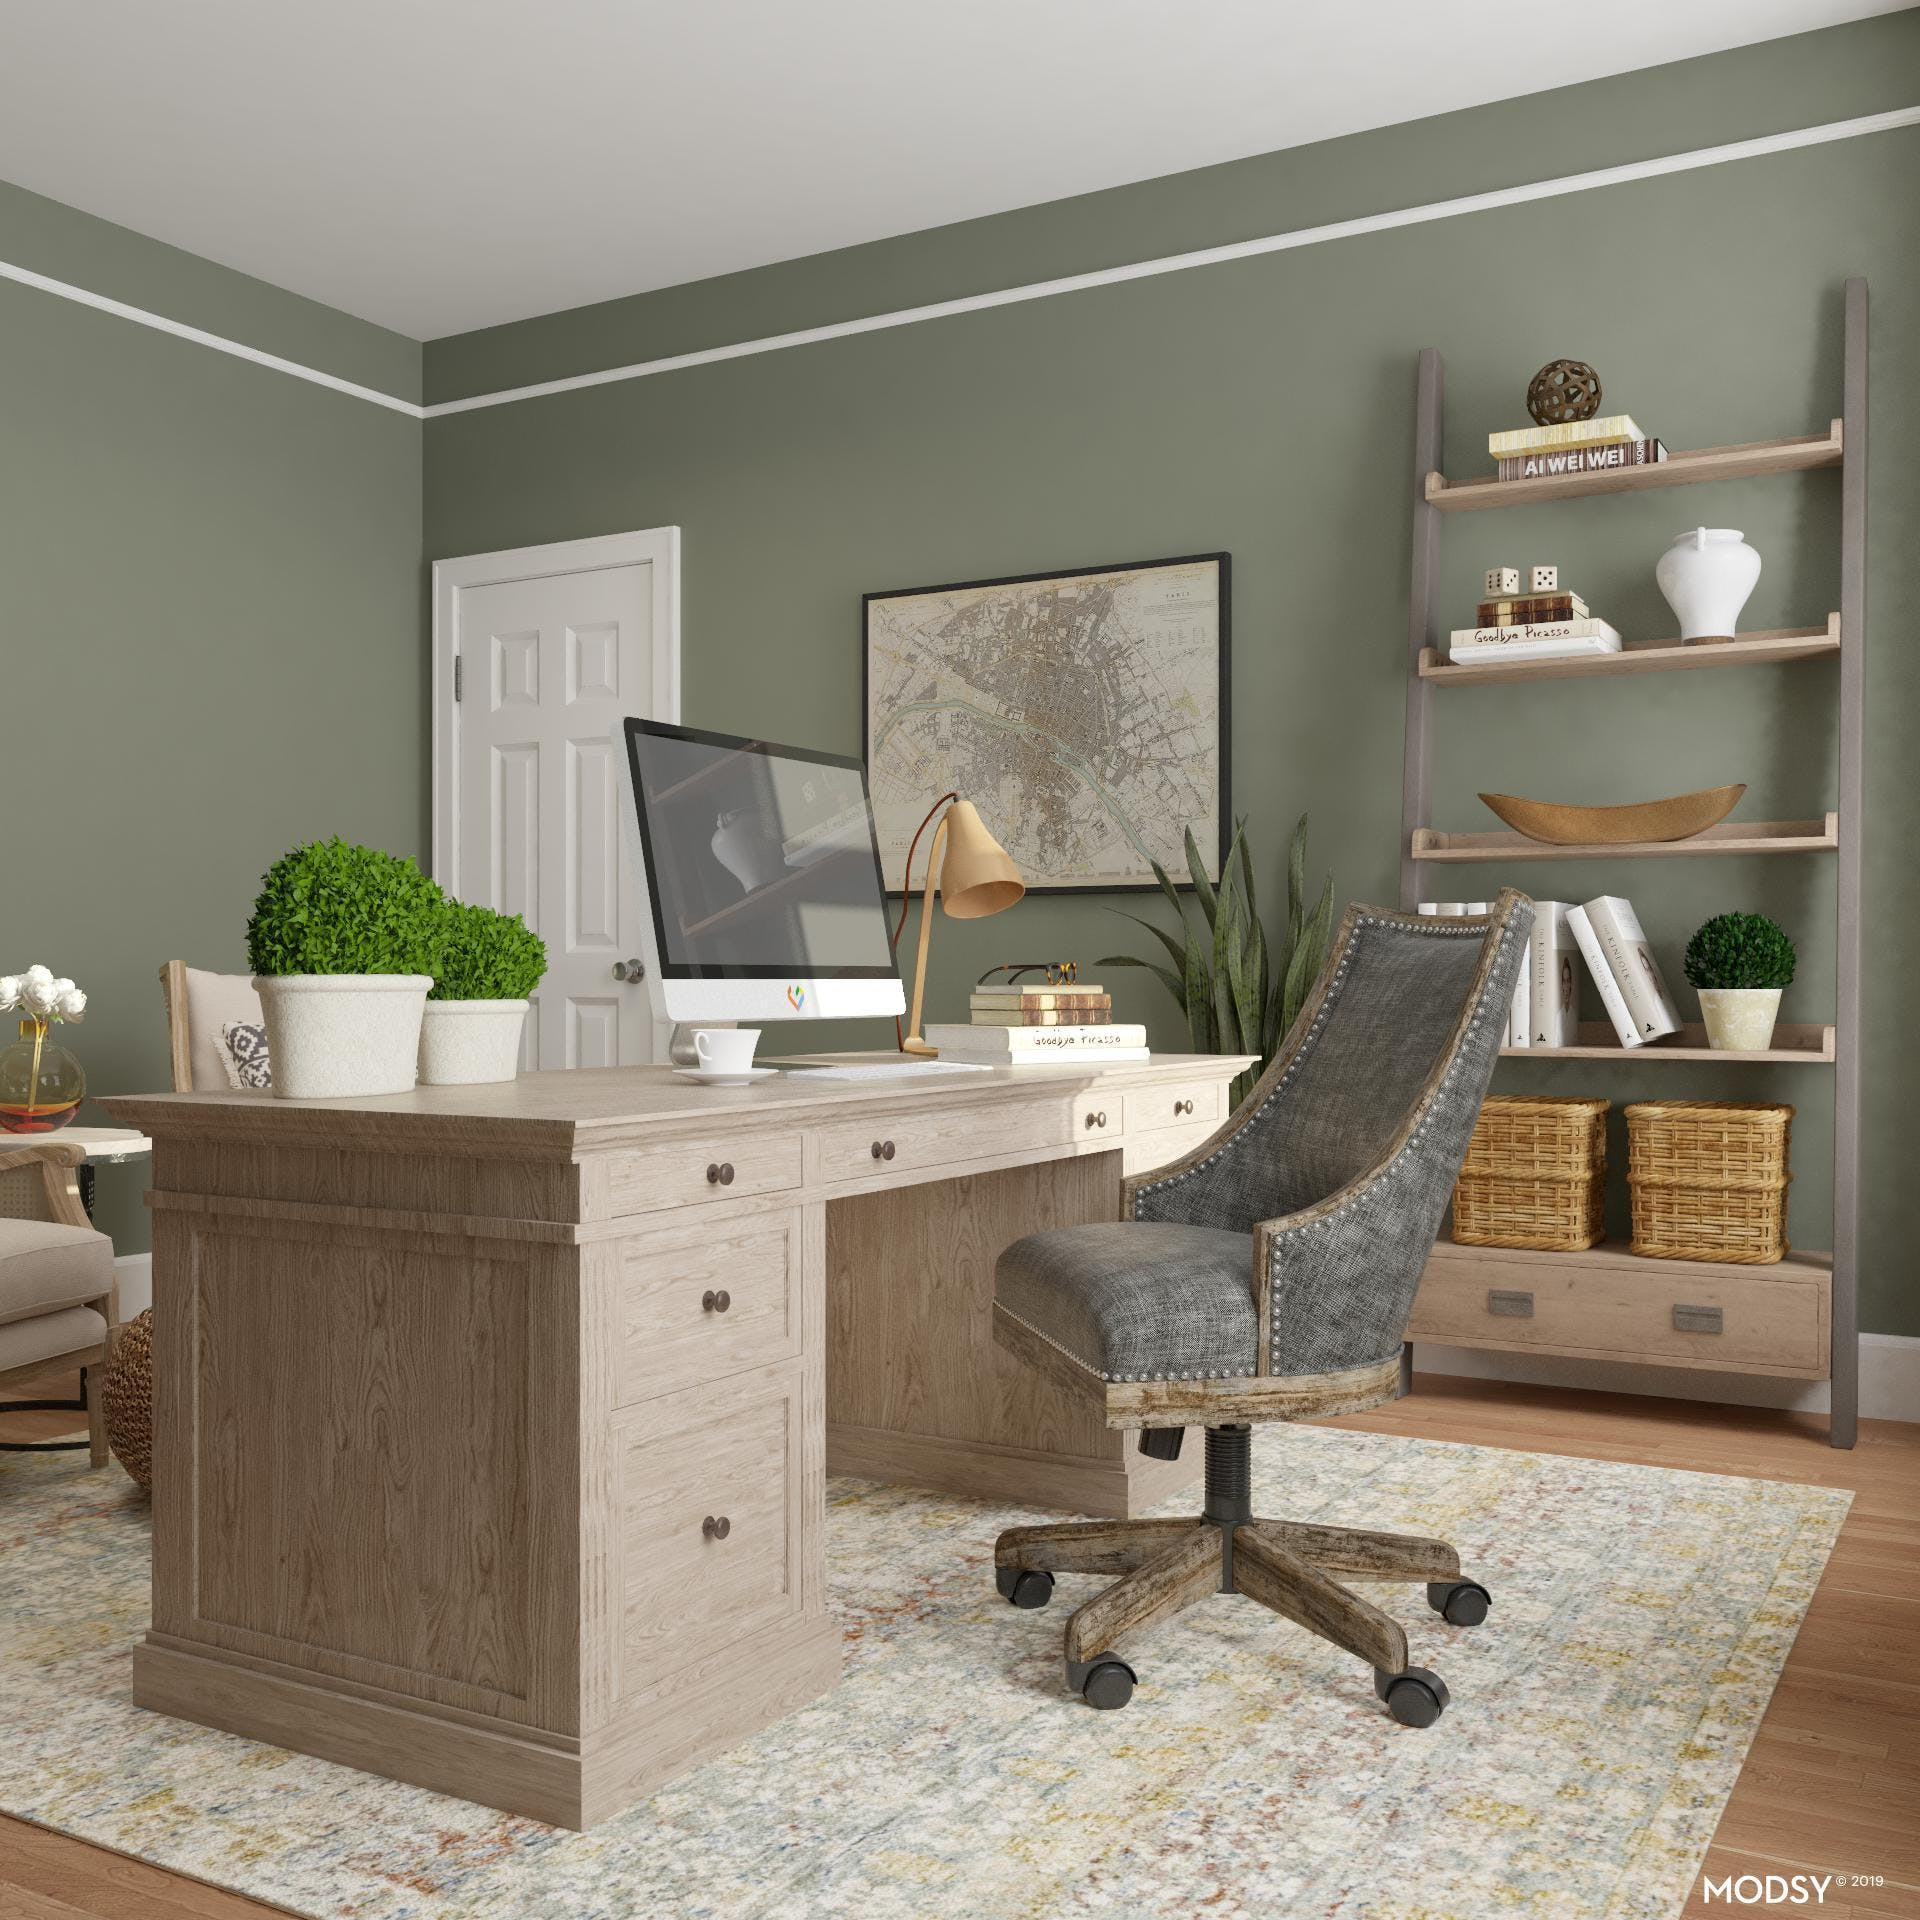 Rustic Earth Tones: Home Office